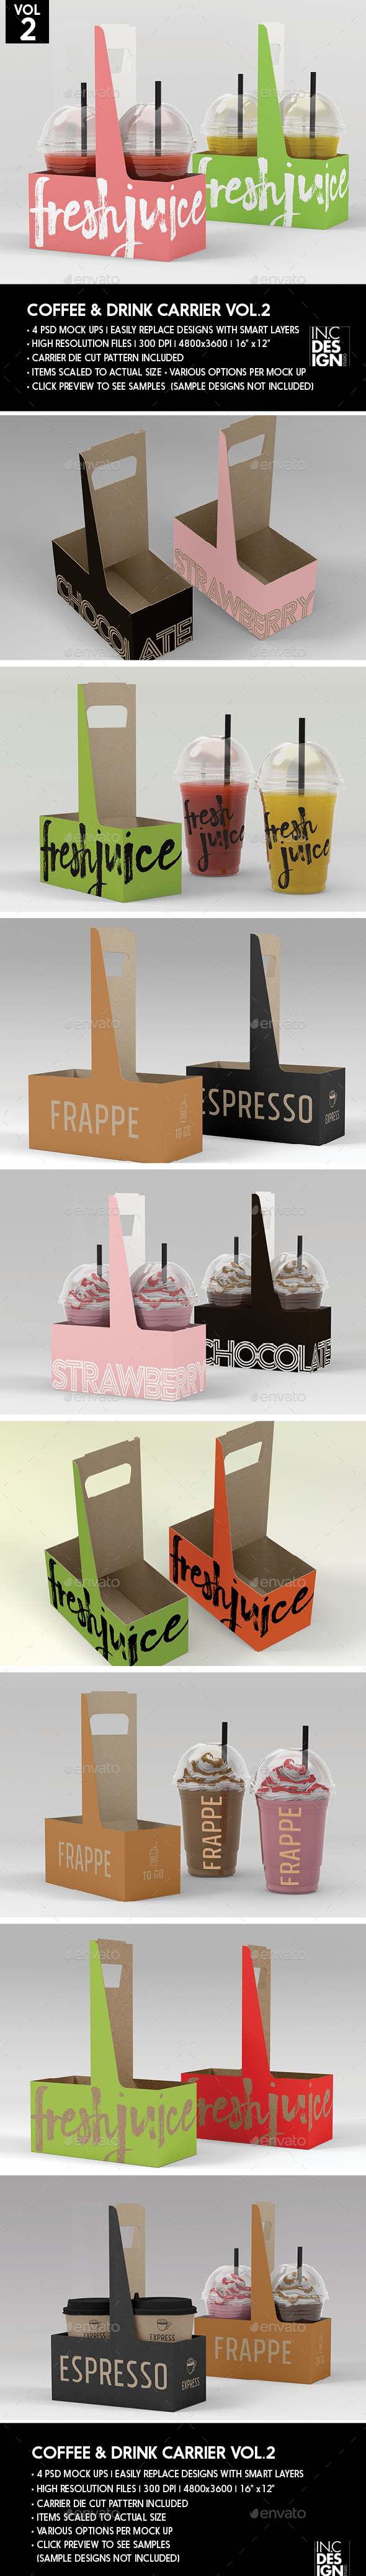 Coffee or Drink Take out Carrier Vol.2 Packaging Mock Up